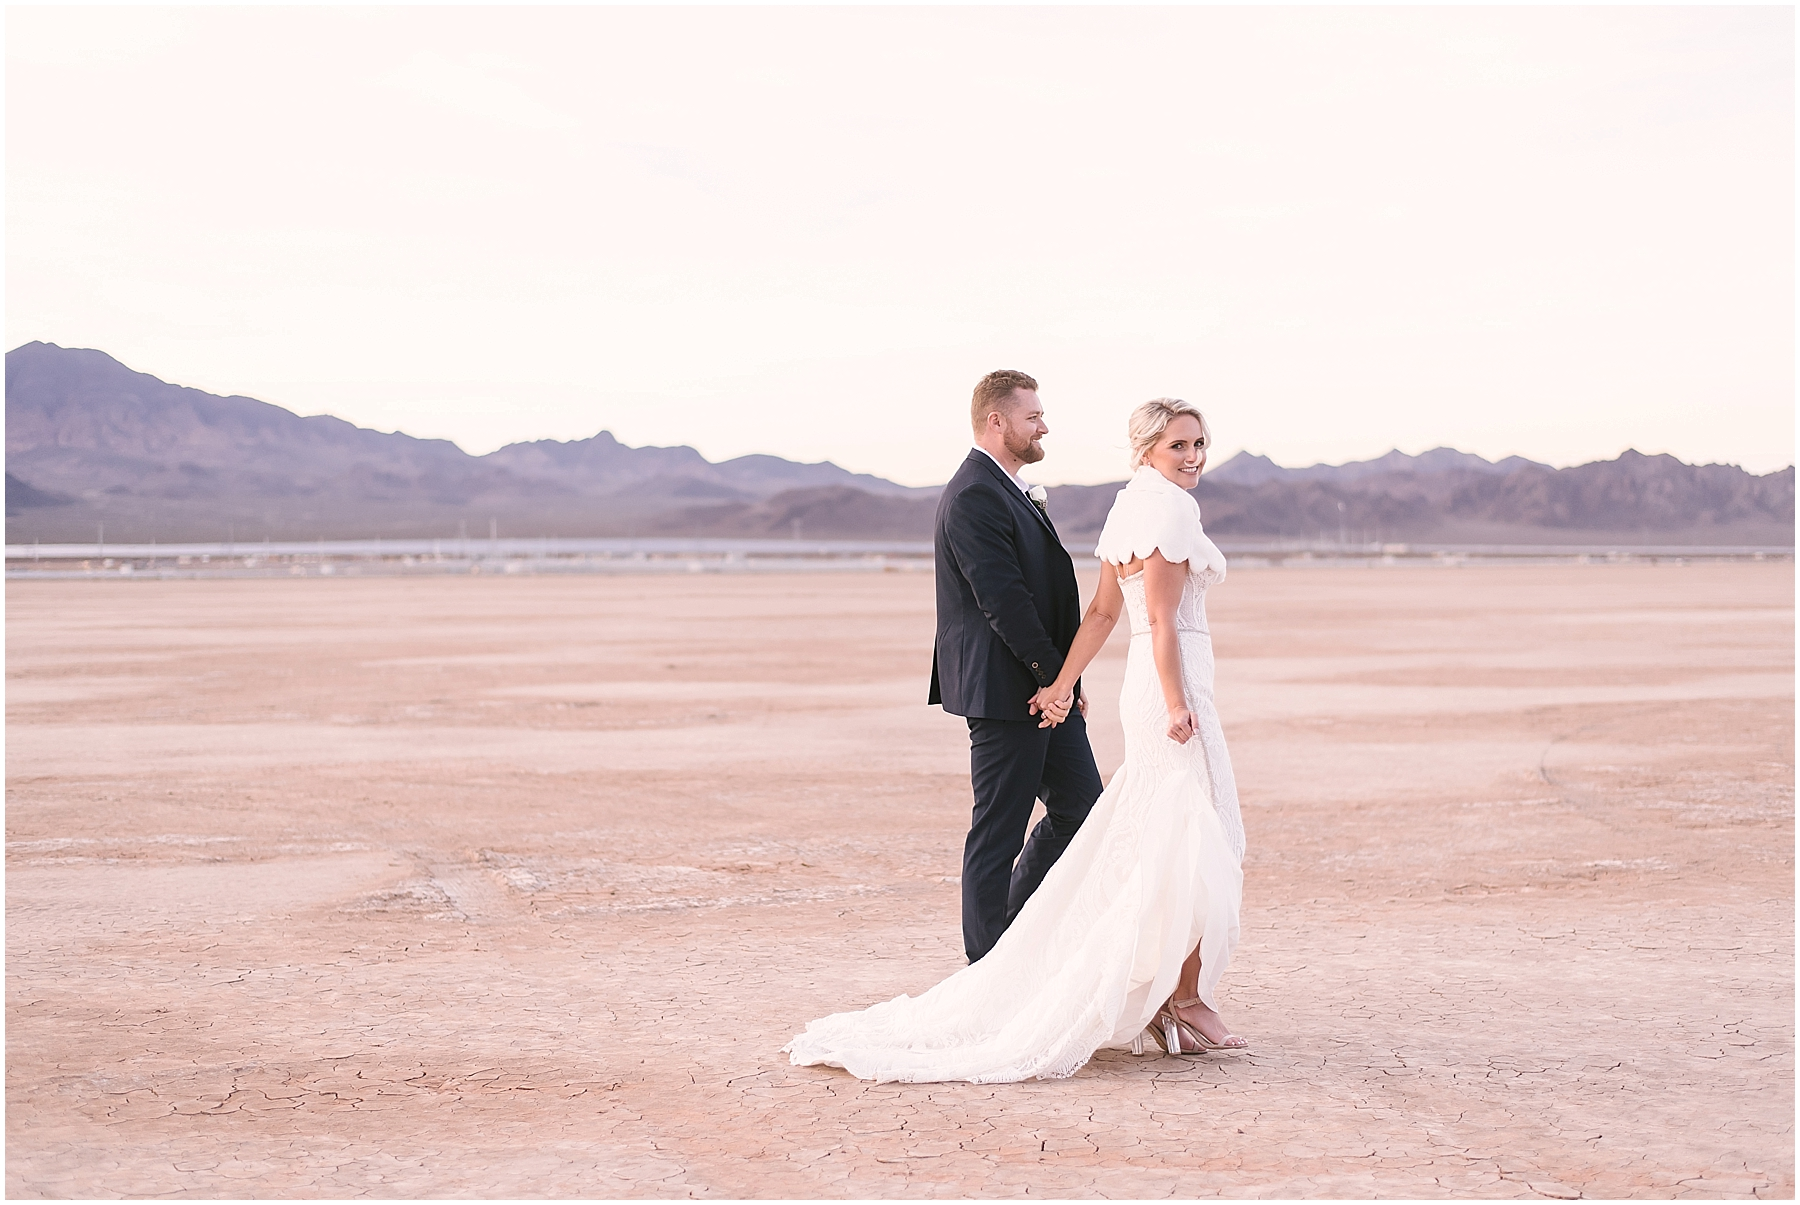 dry_lake_bed_nelson__las_vegas_elopement_photography_blog-16.jpg